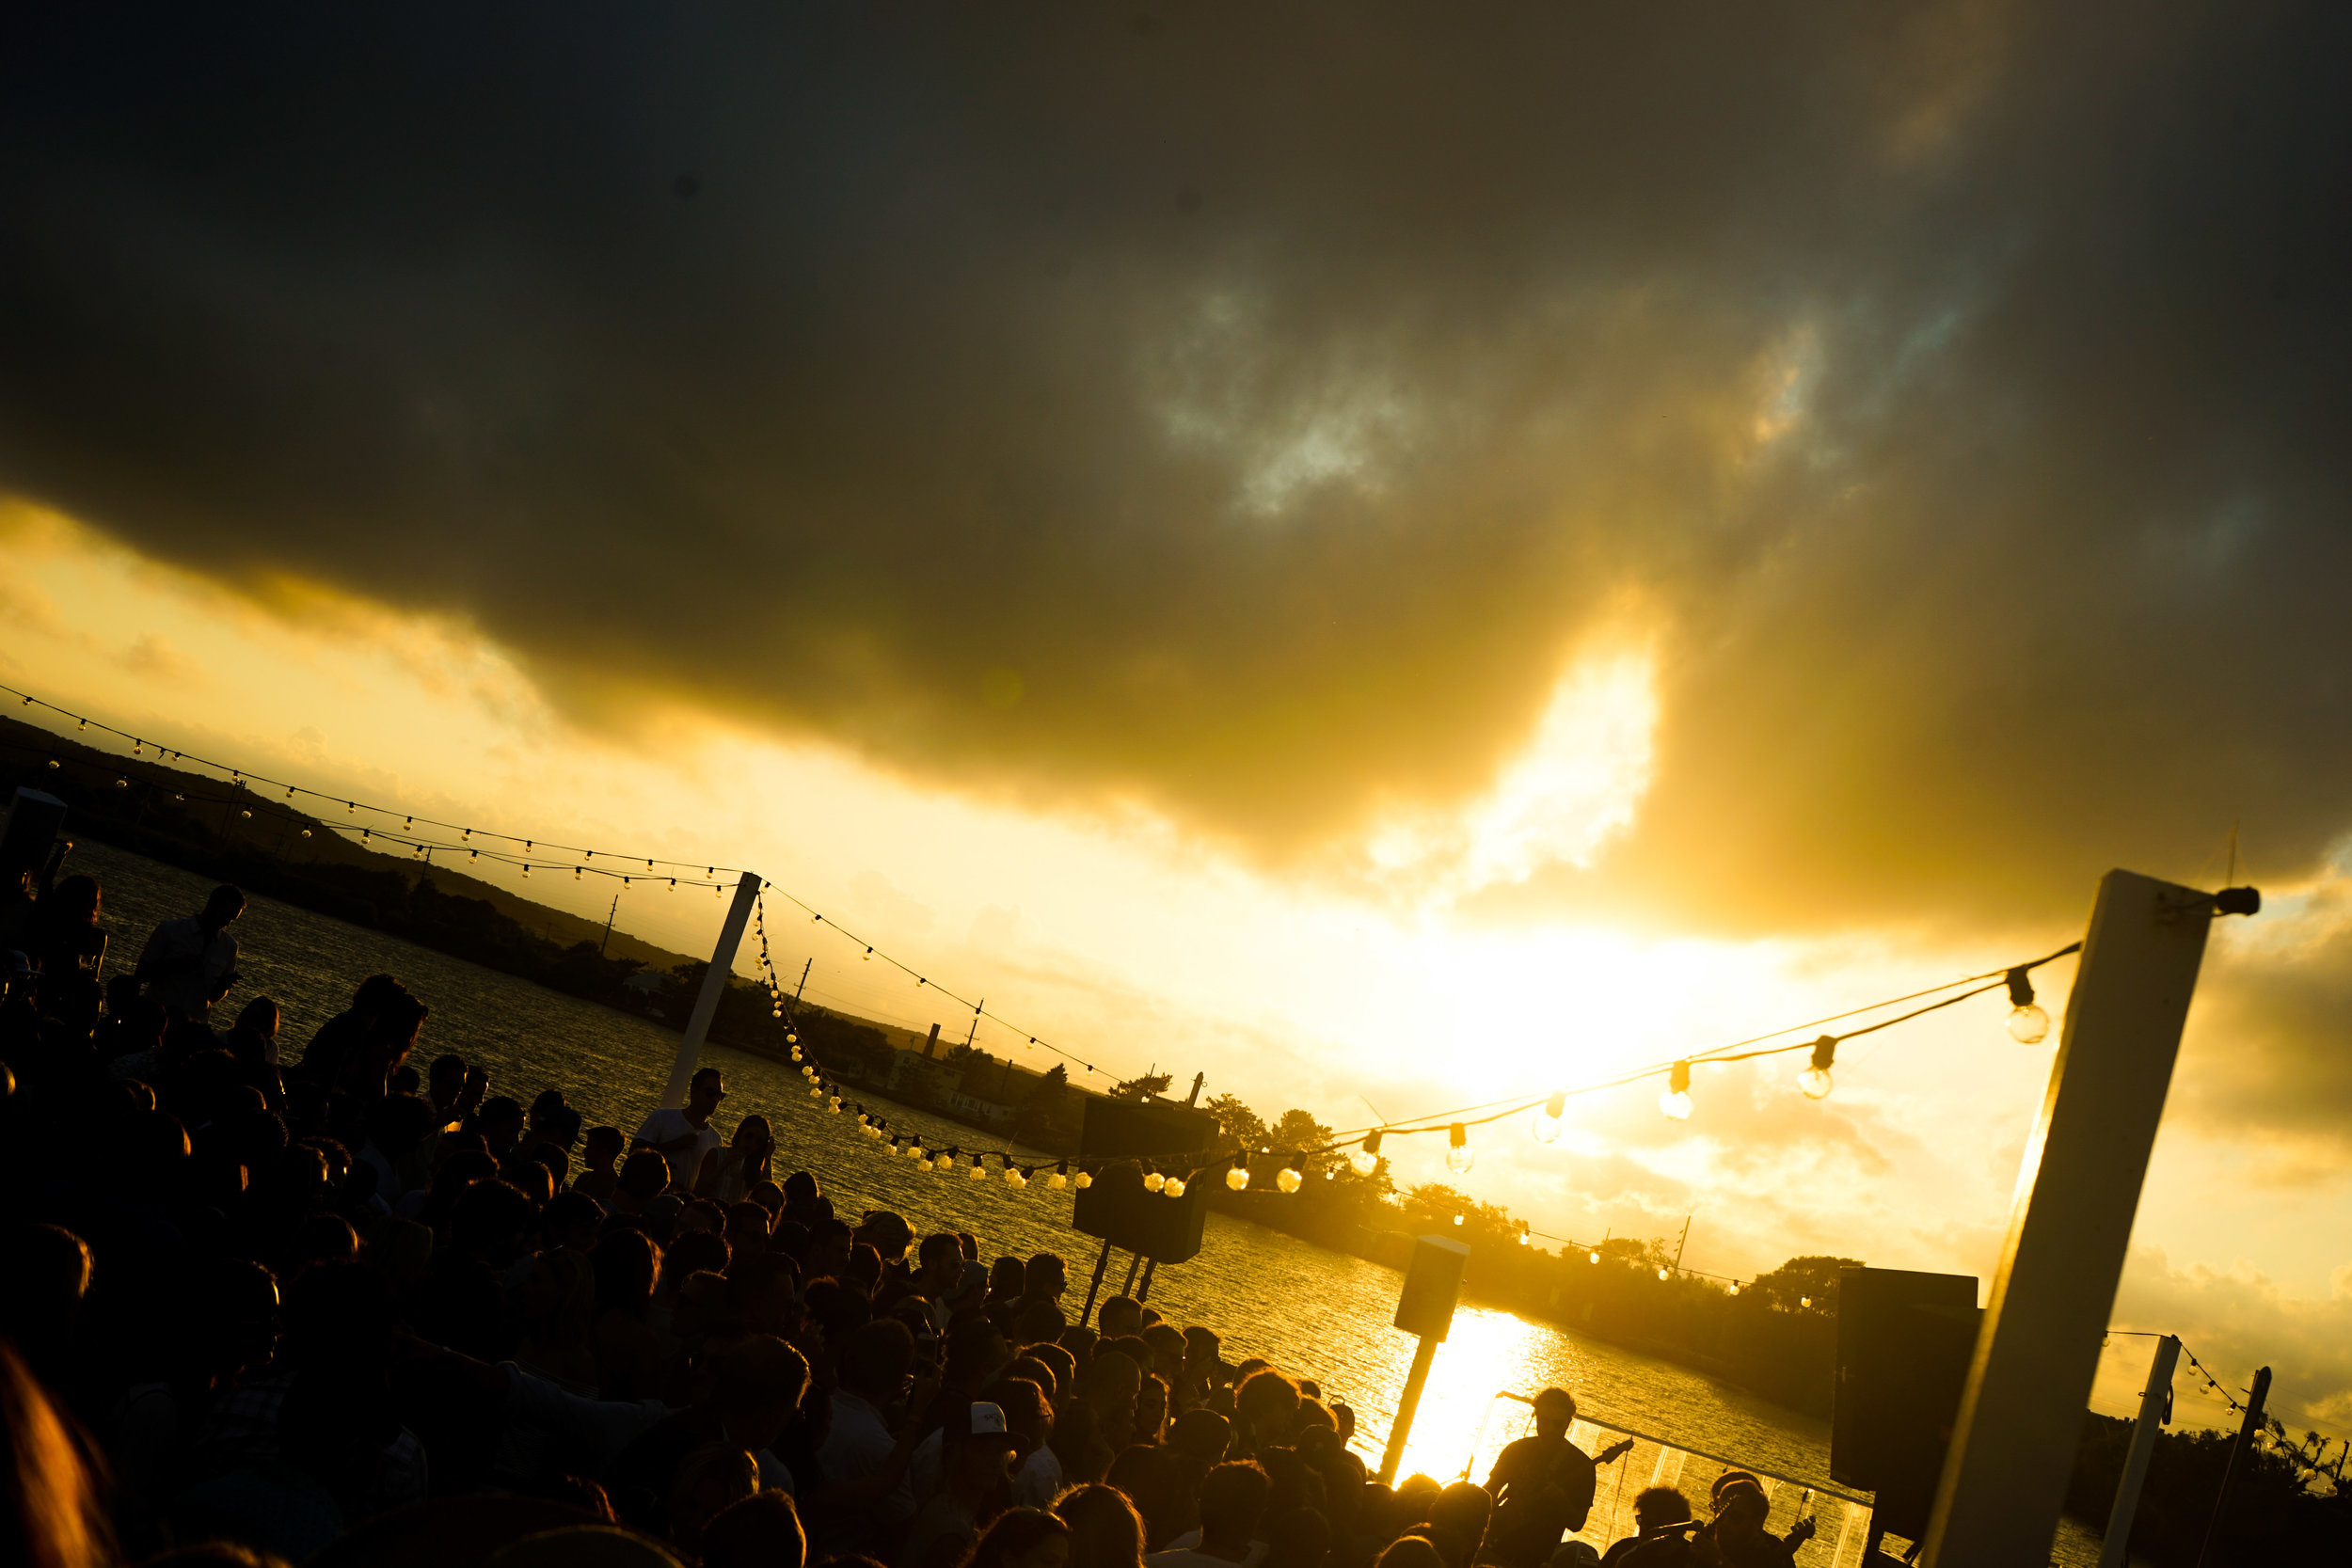 Overlooking a crowded party on the waterfront at sunset.